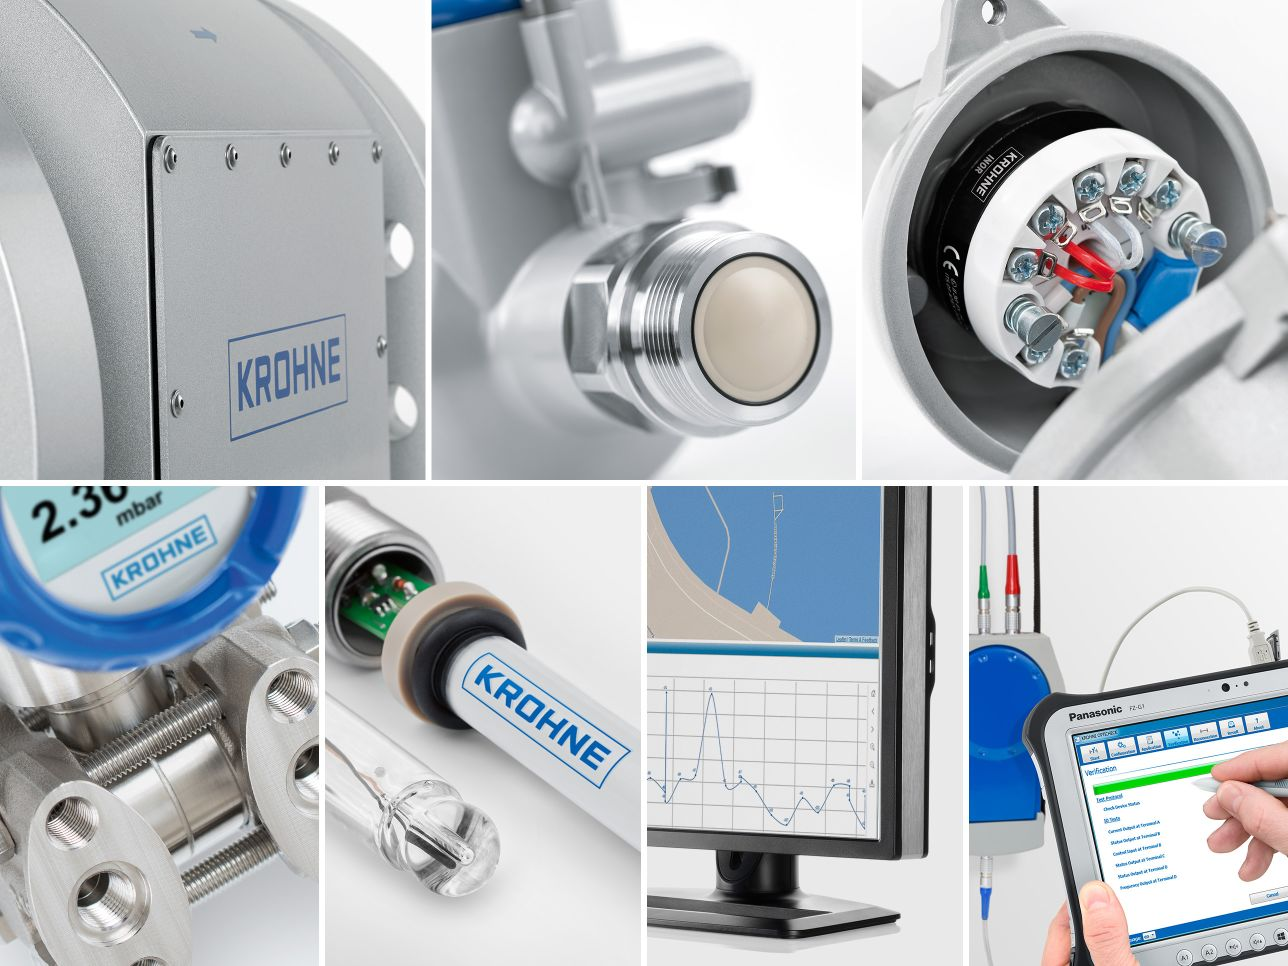 Photo composing of different close ups of krohne products from multiple product categories